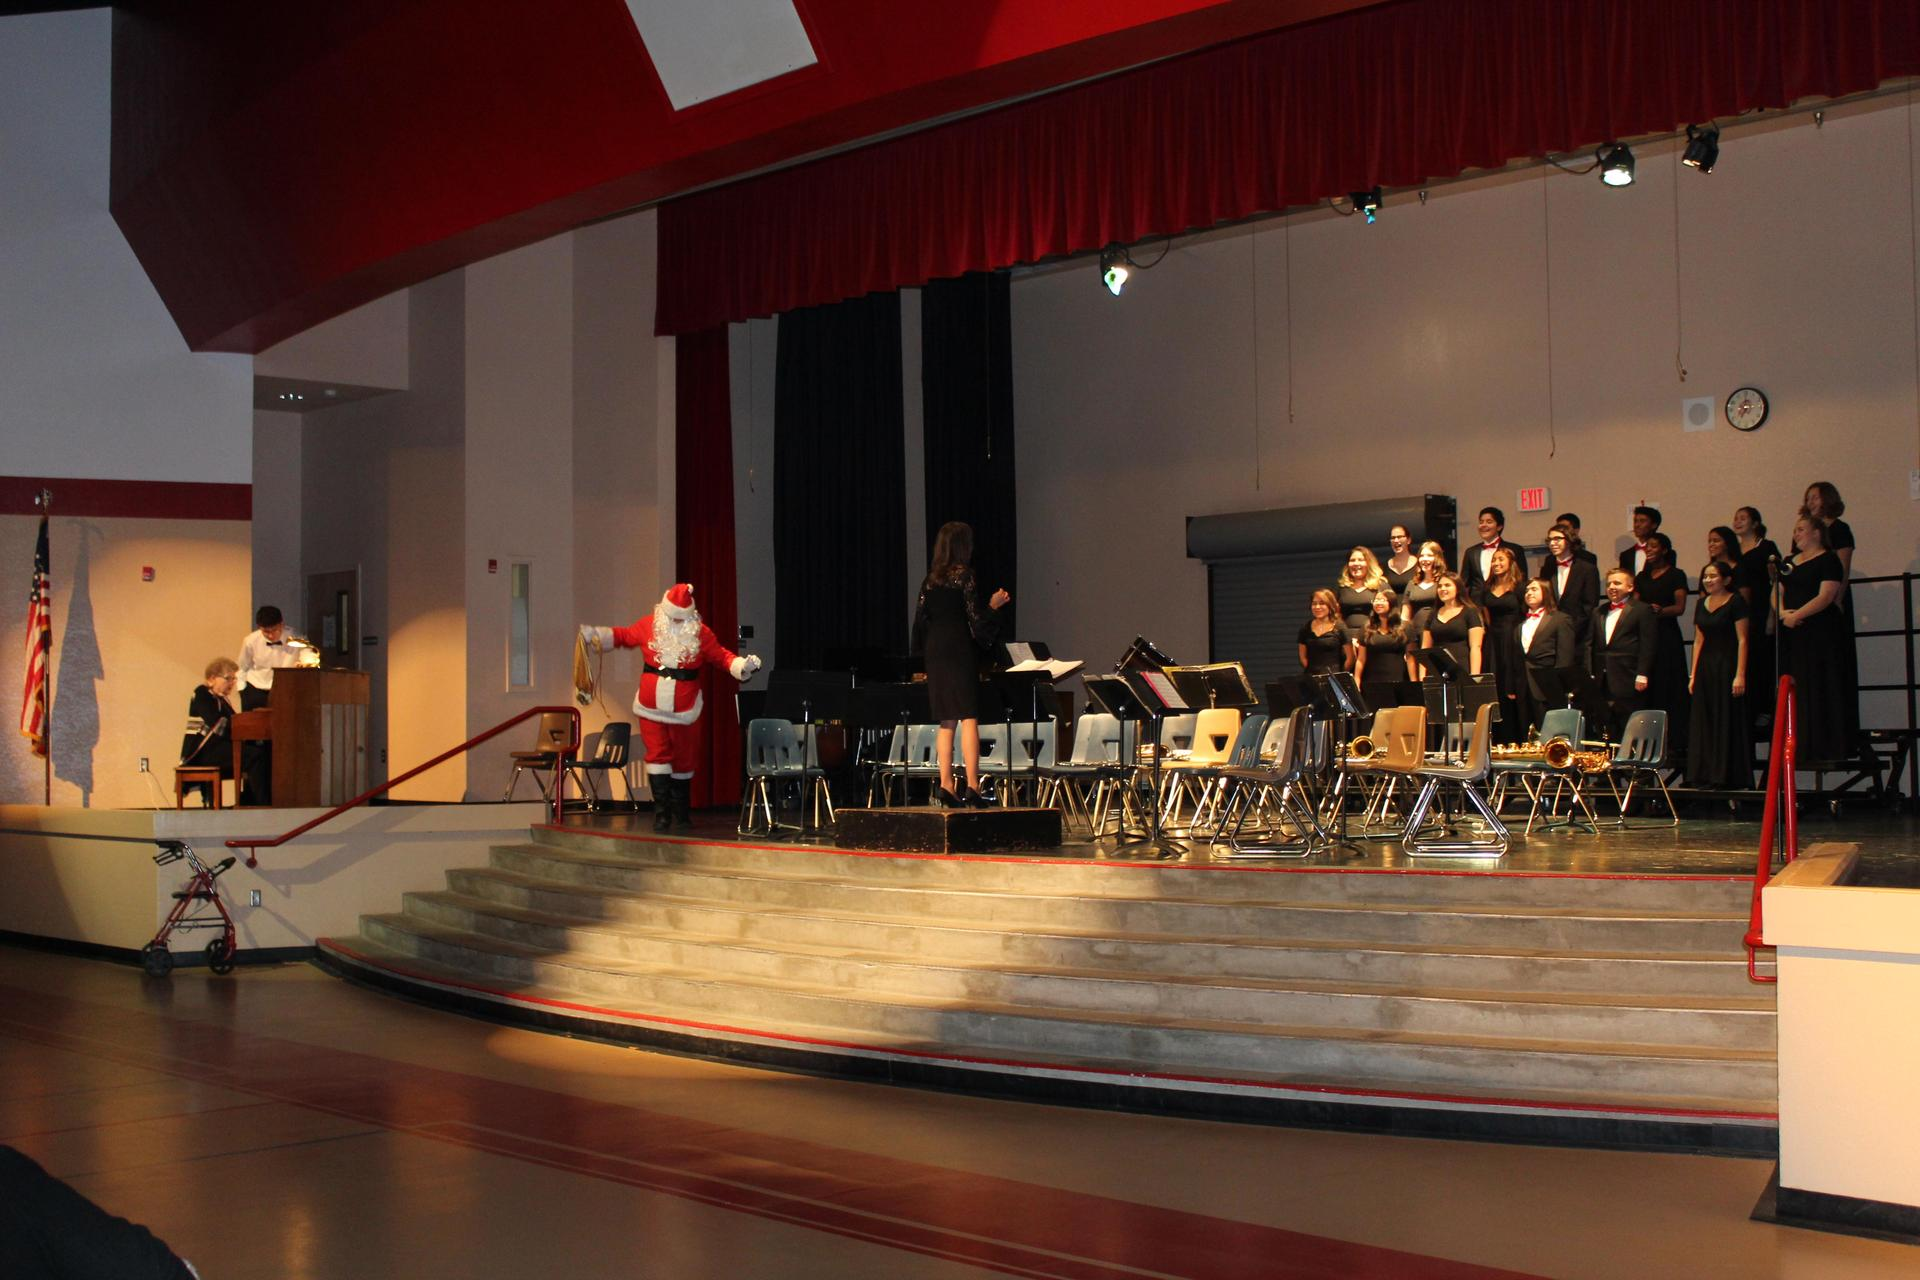 Santa appears on stage with the CUHS Choir.